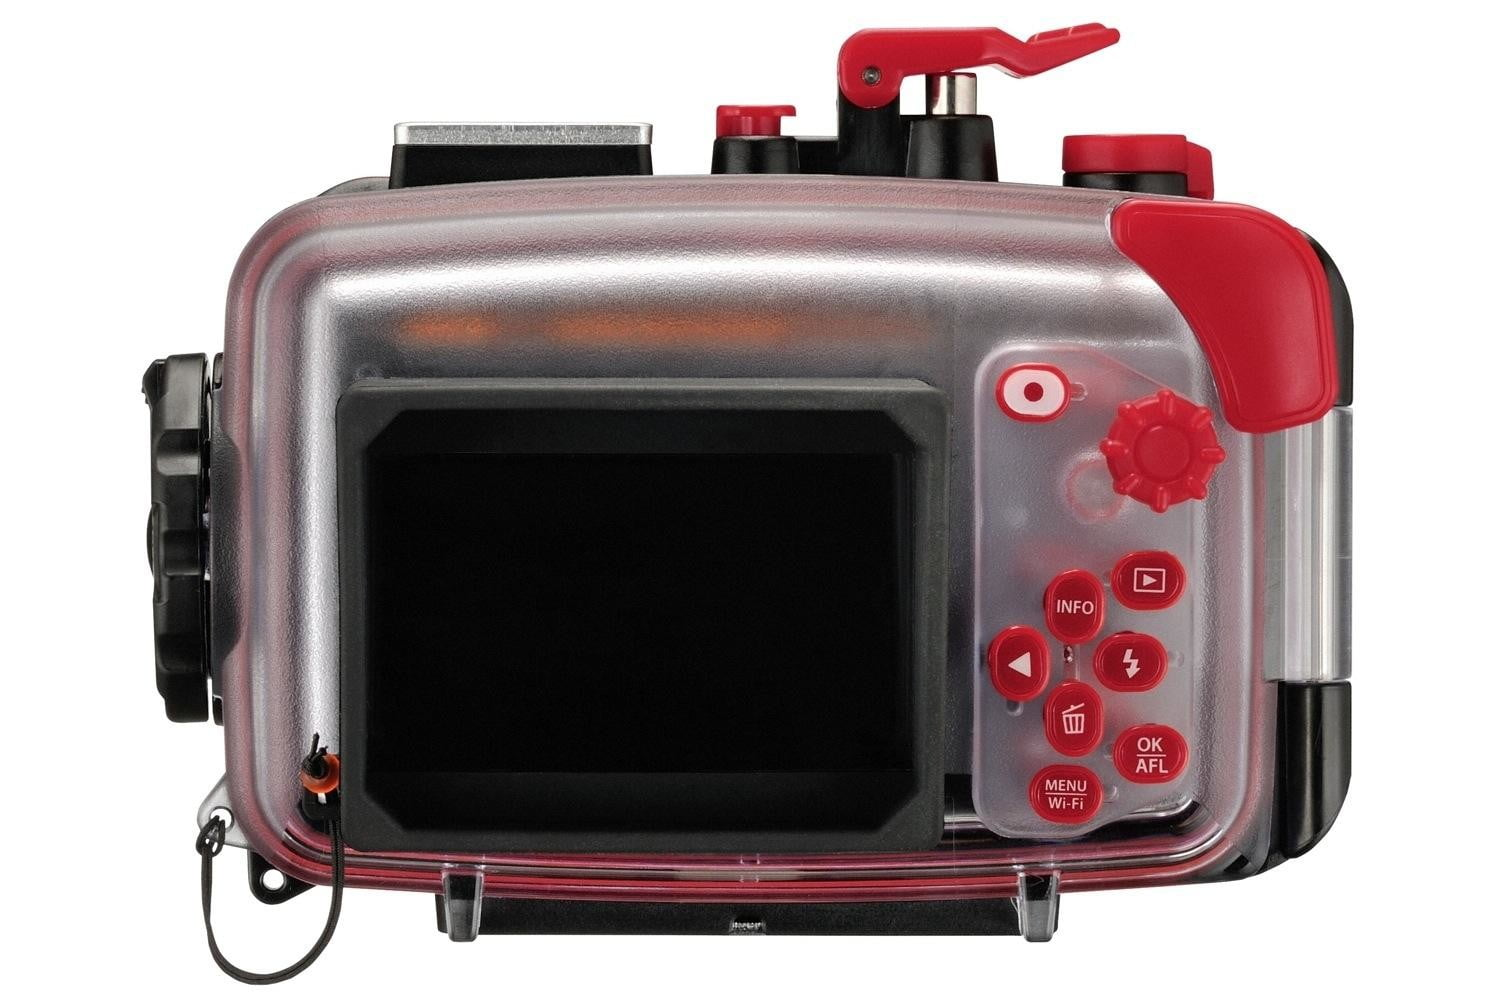 olympus new rugged tg 860 swims deeper now wi fi pt 057 org  back